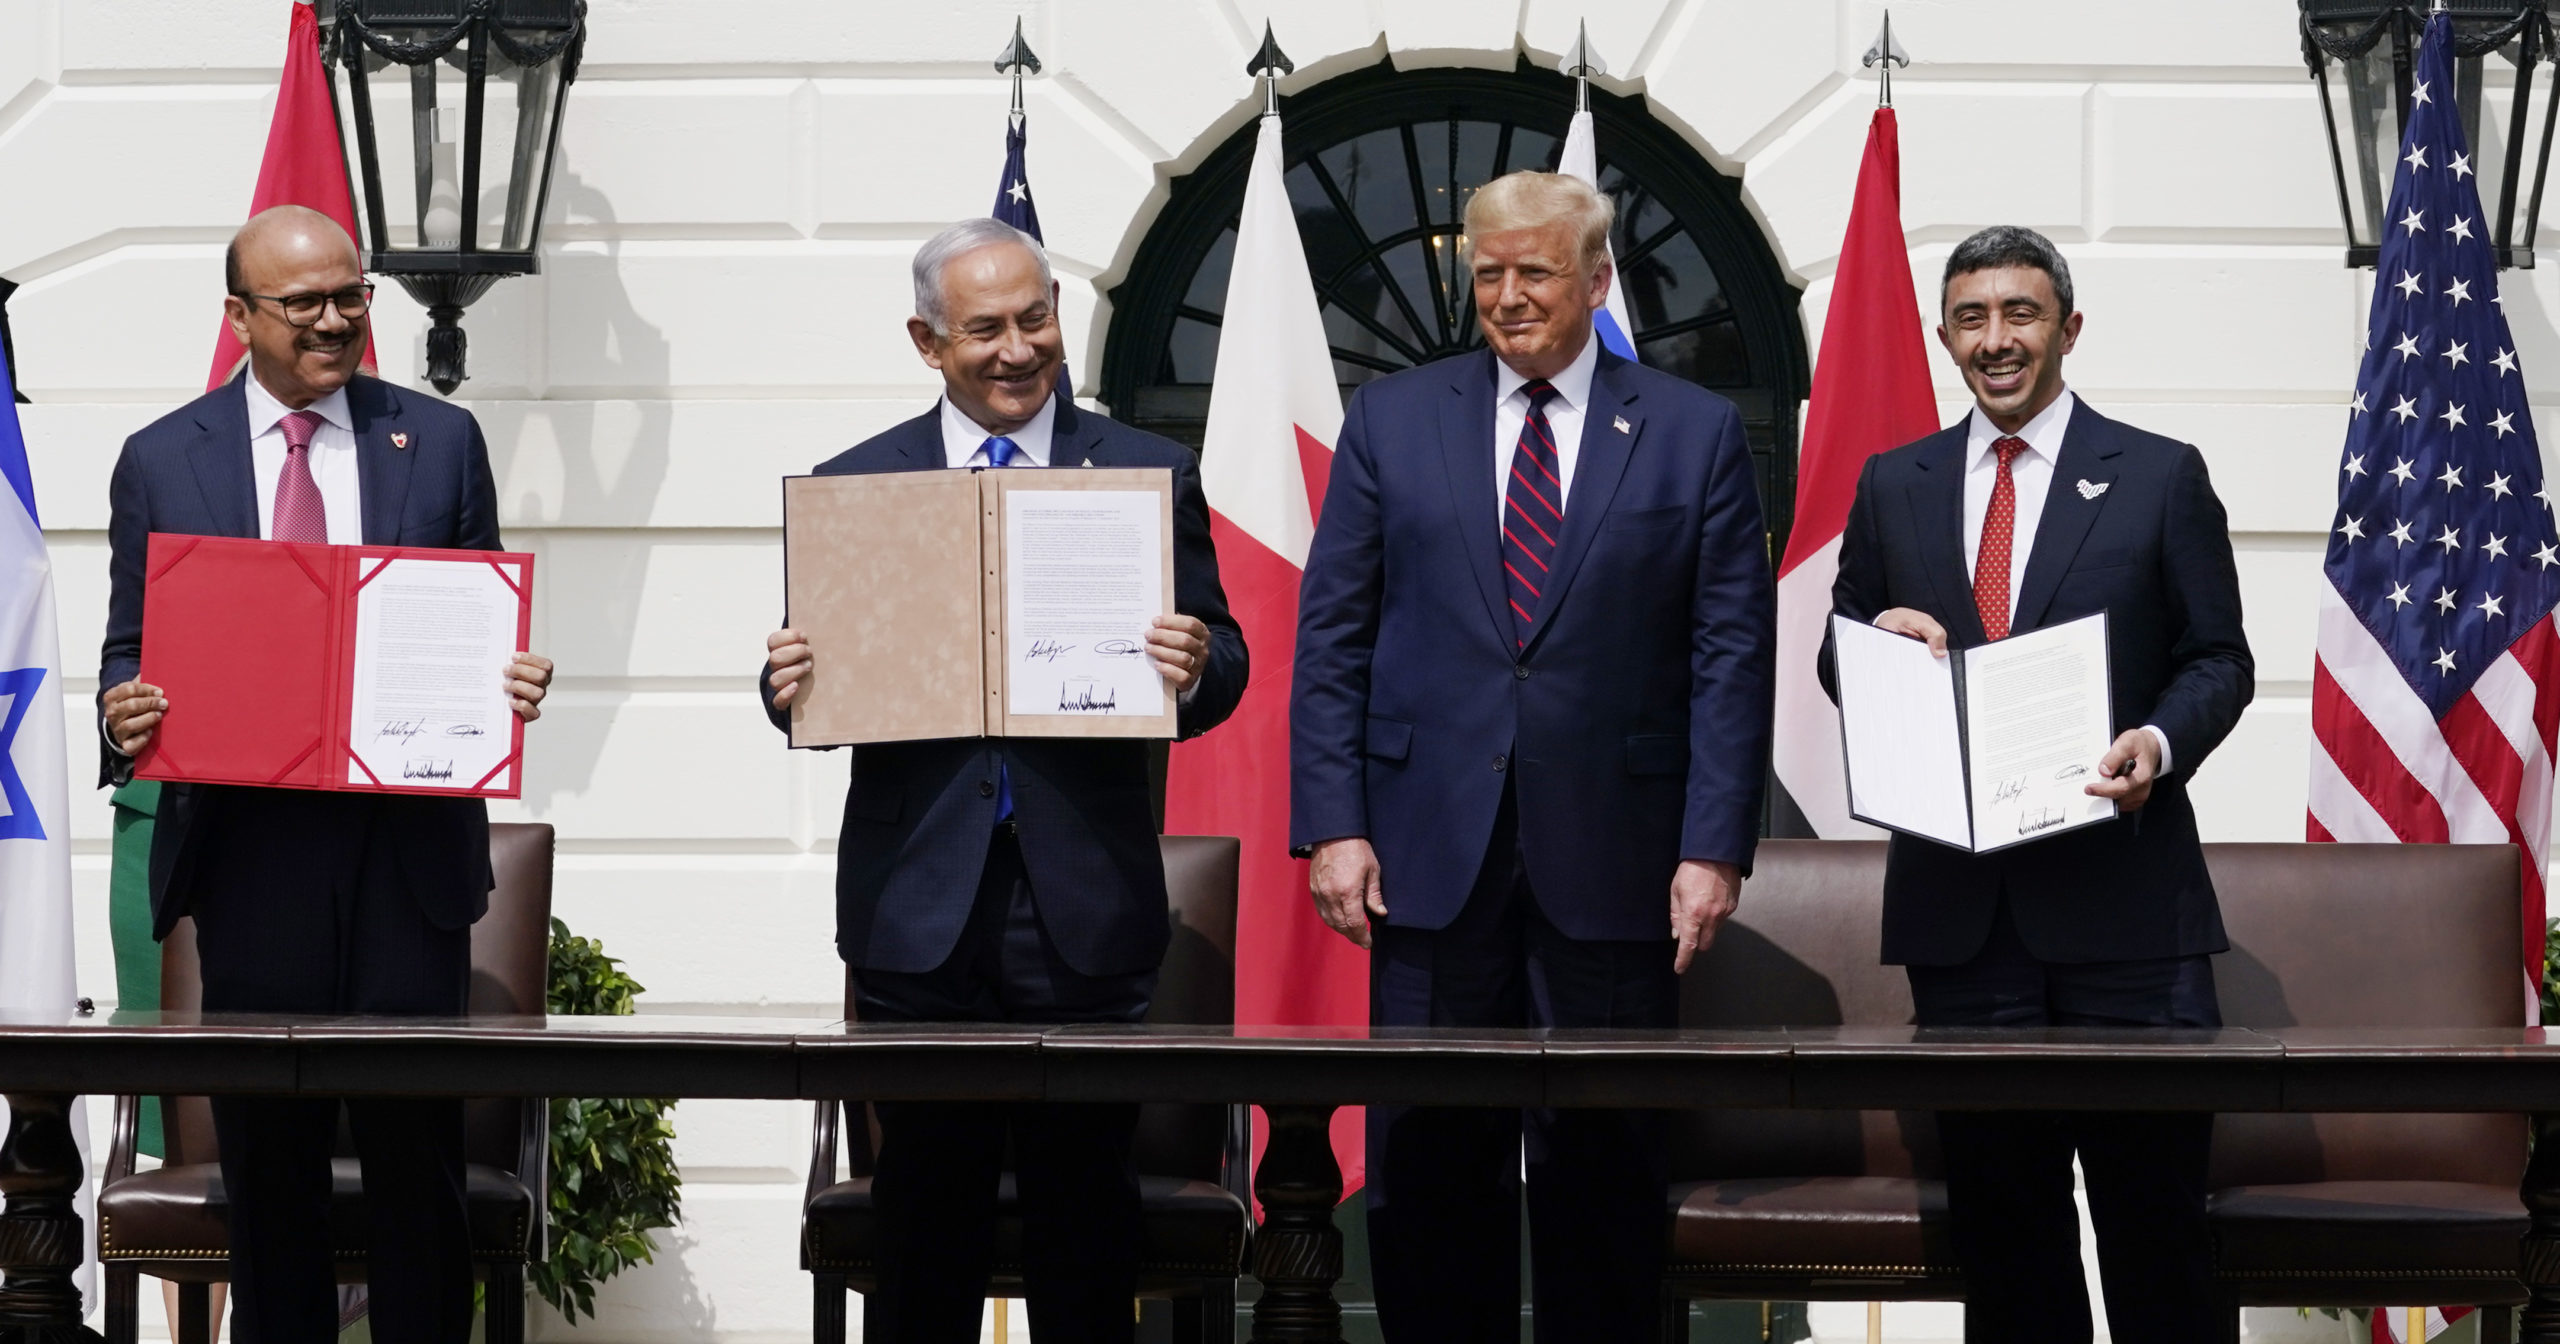 Bahrain Foreign Minister Khalid bin Ahmed Al Khalifa, Israeli Prime Minister Benjamin Netanyahu, US President Donald Trump and United Arab Emirates Foreign Minister Abdullah bin Zayed al-Nahyan attend the Abraham Accords signing ceremony on the South Lawn of the White House on Sept. 15, 2020, in Washington, D.C.